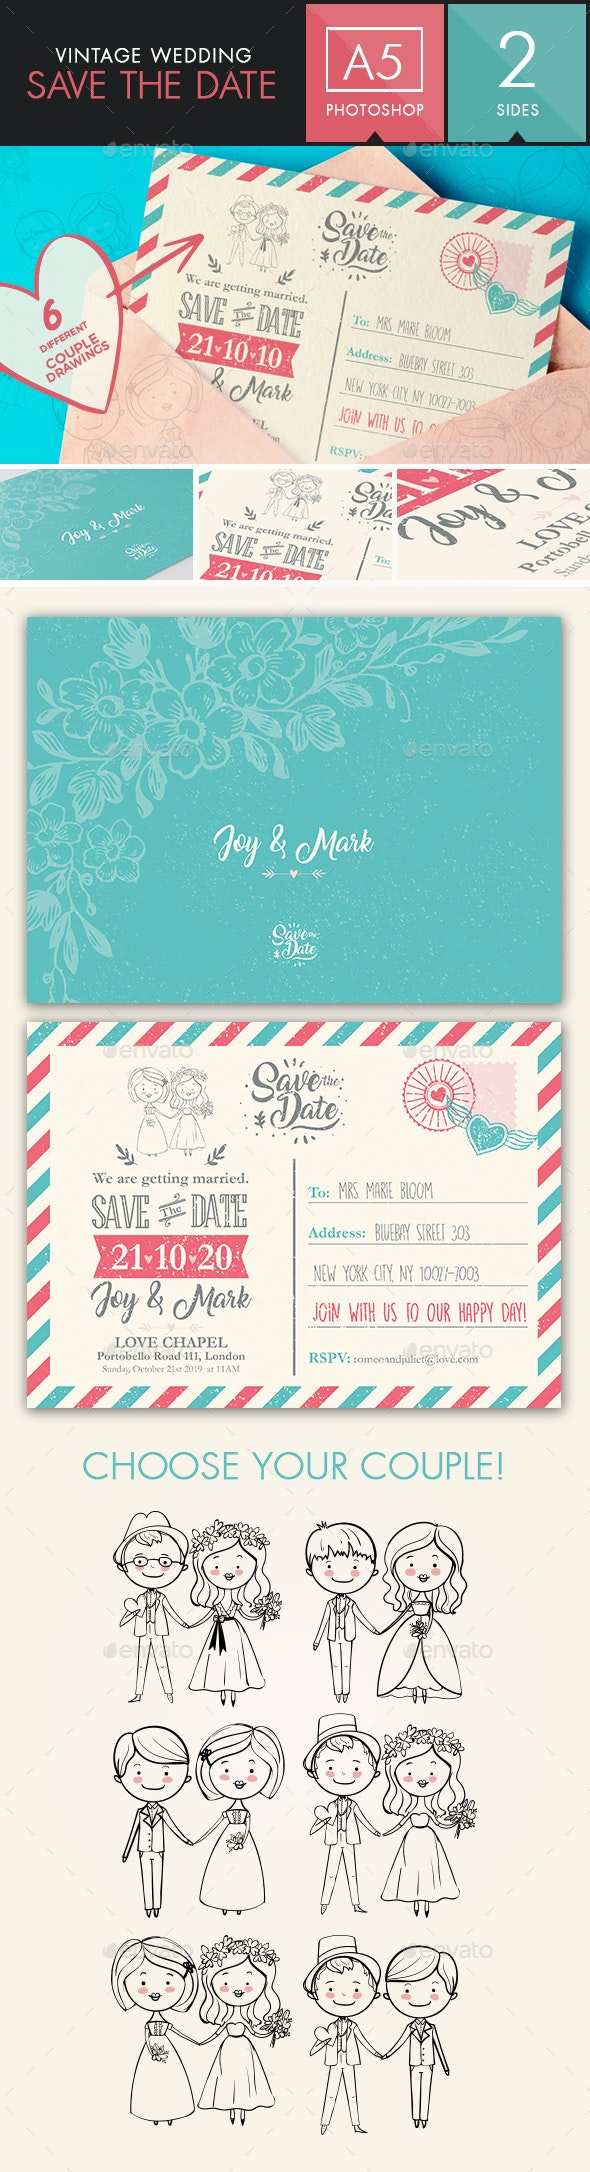 Save the Date - Vintage Wedding Postcard | Choose your couple! - Weddings Cards & Invites